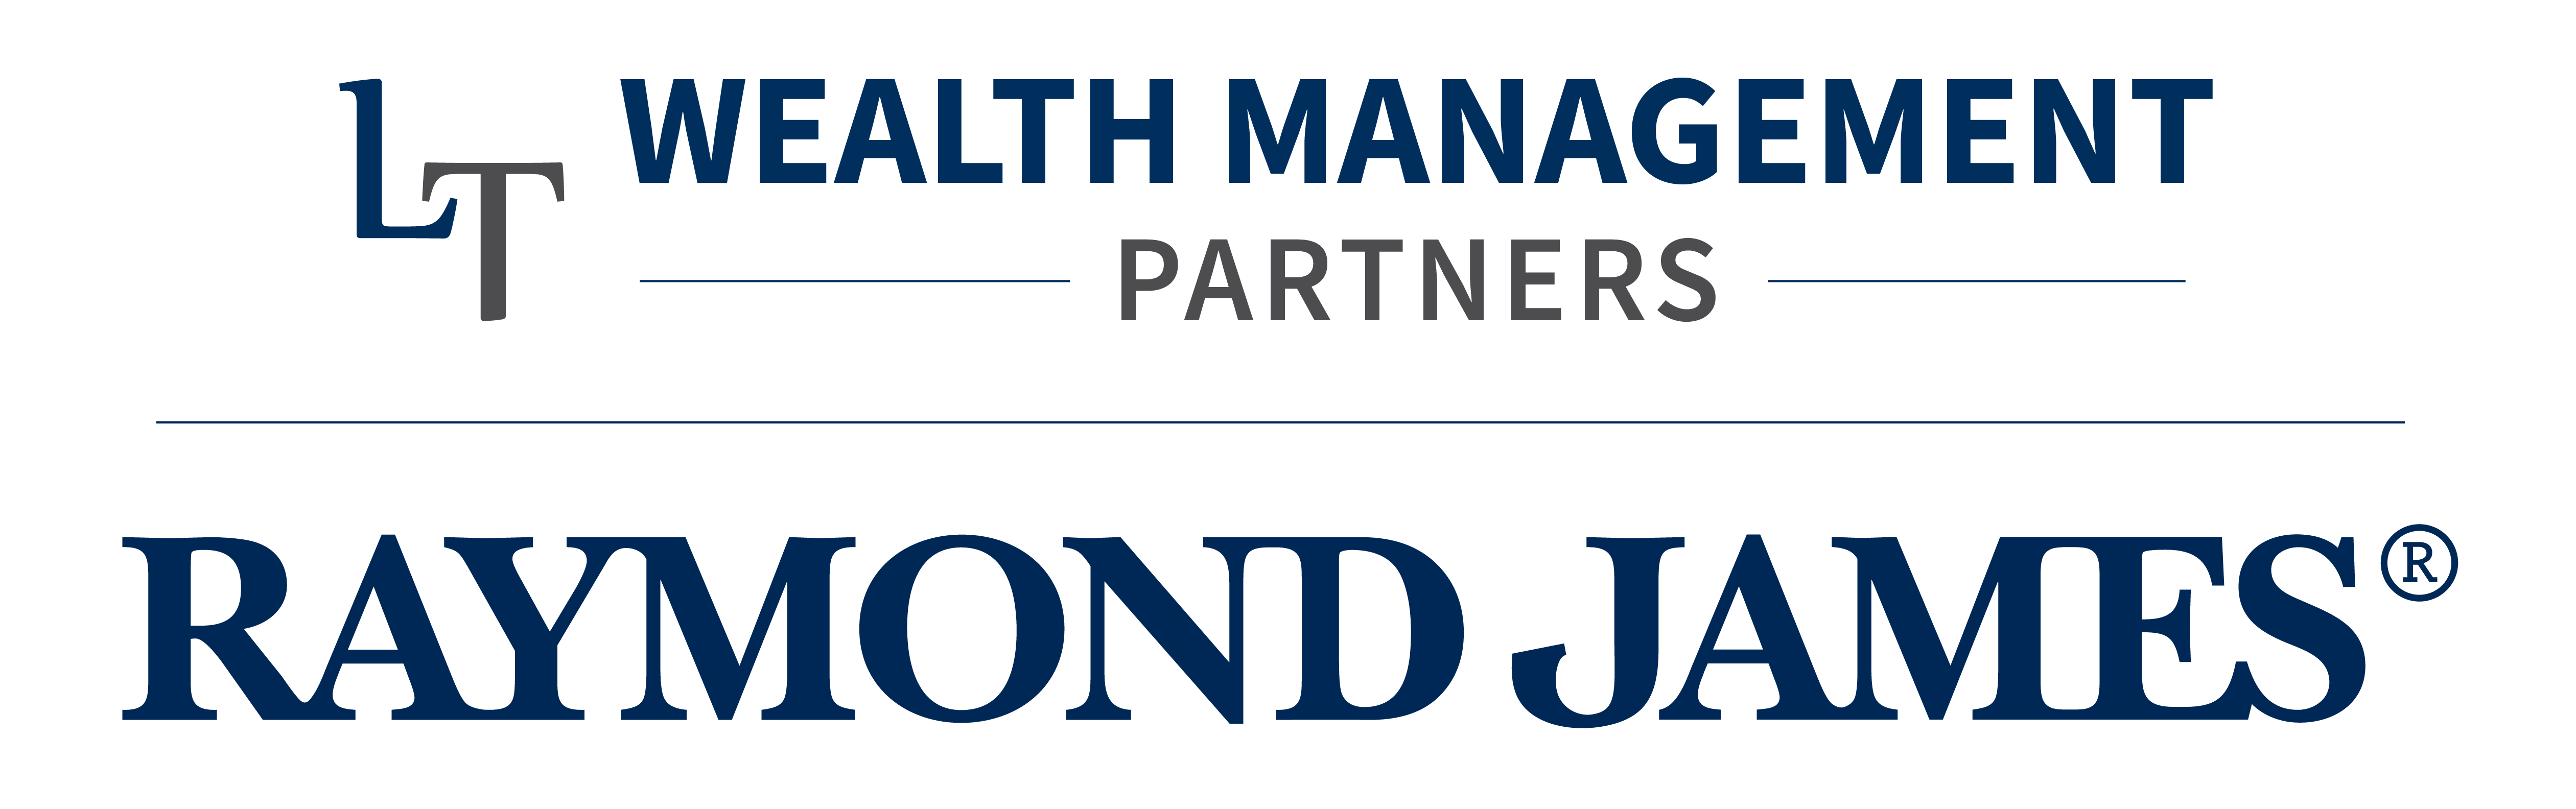 LT Wealth Raymond James Co-branded Logo